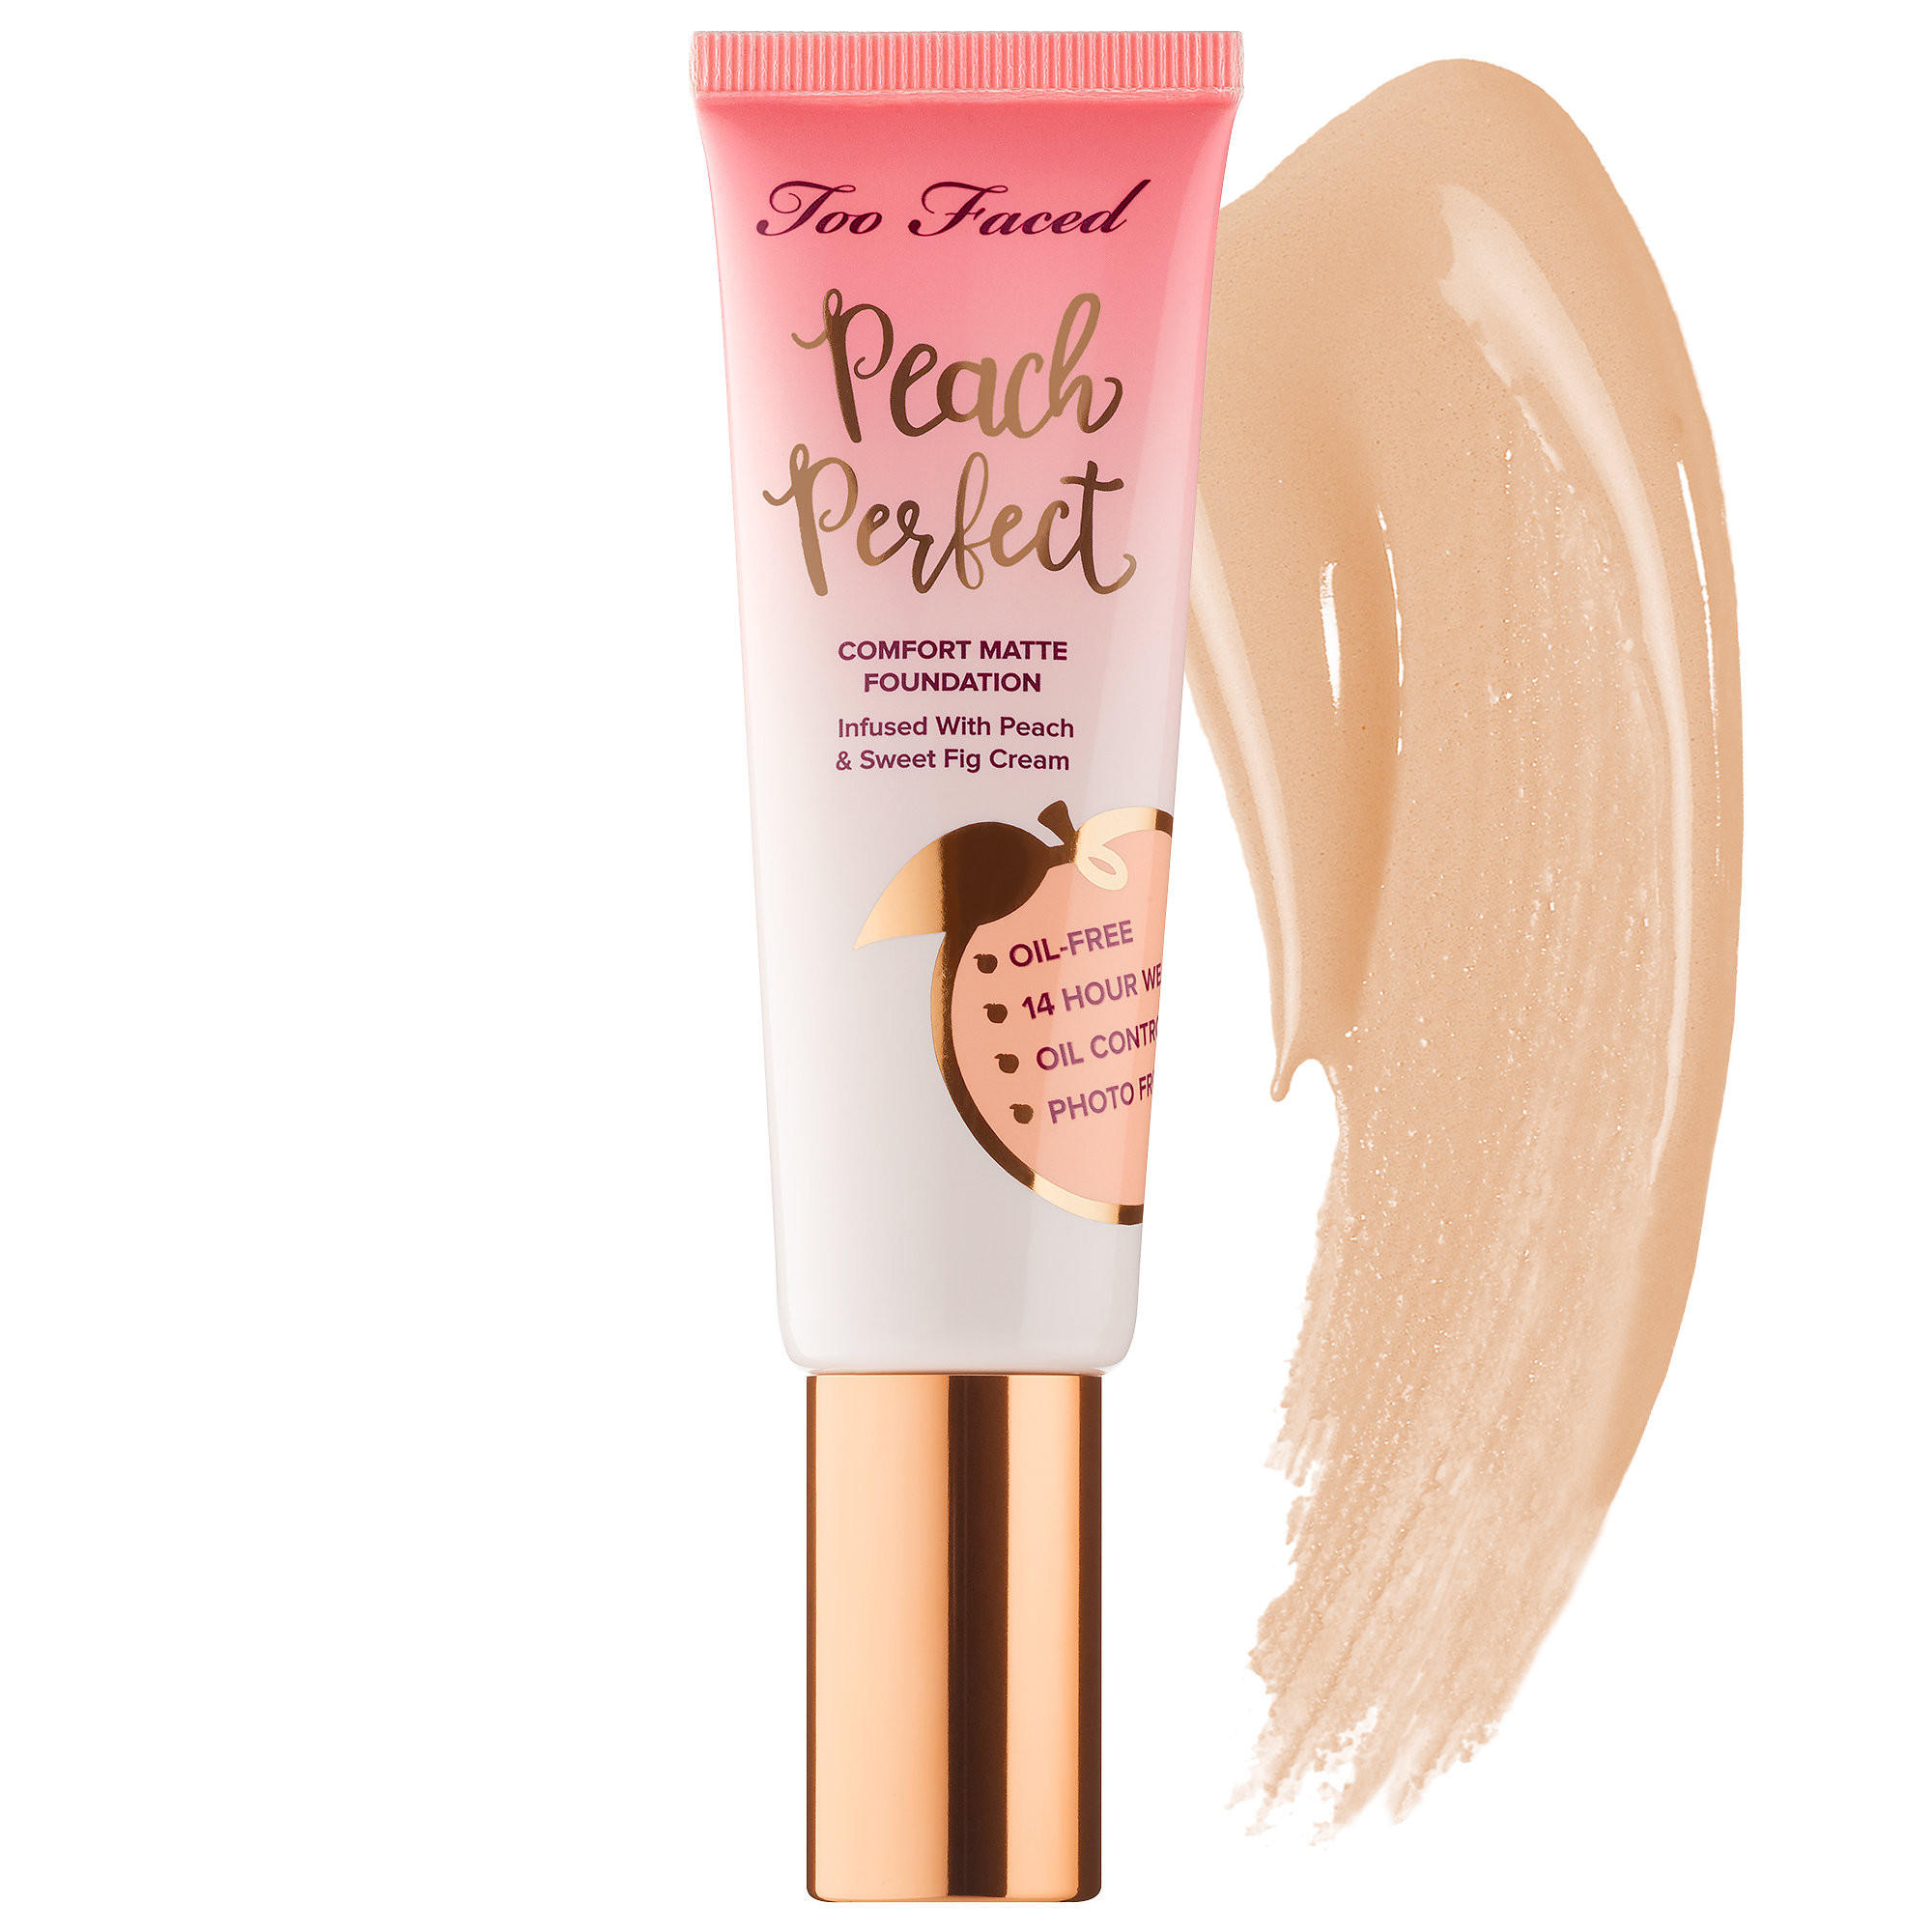 Too Faced Peach Perfect Comfort Matte Foundation Nude